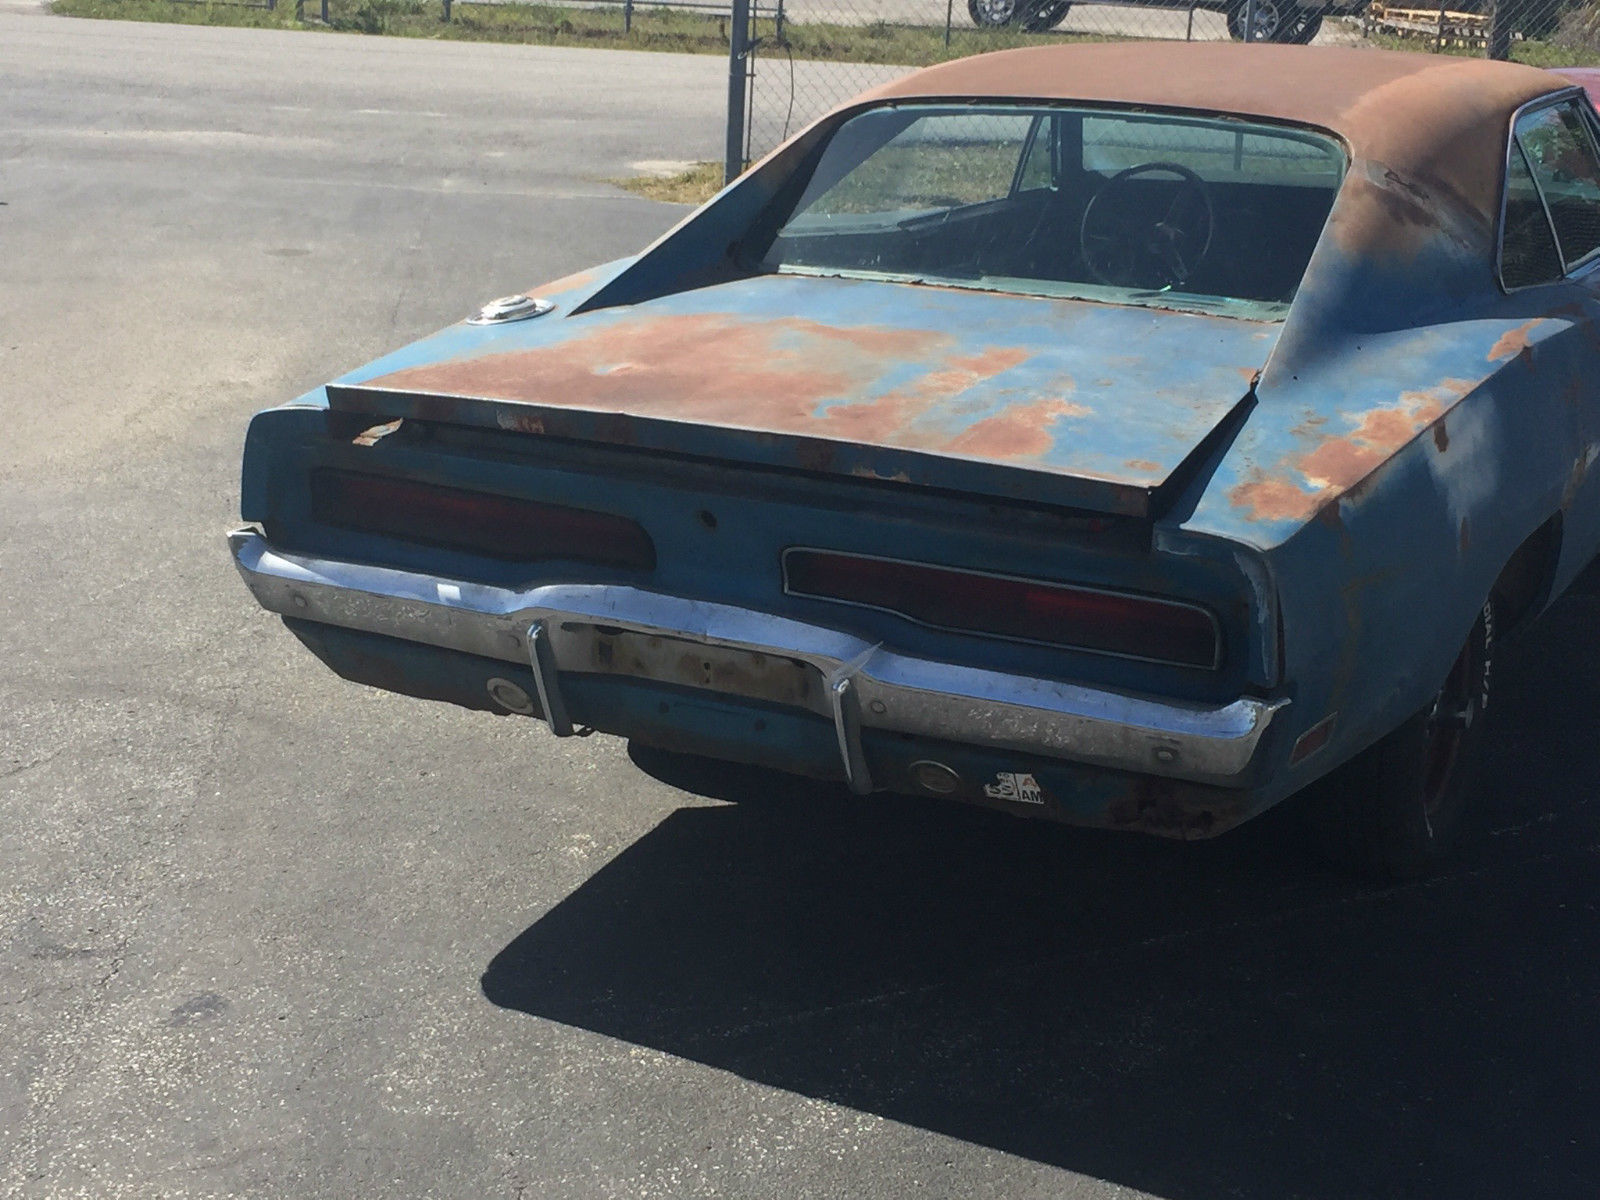 69 dodge charger project car for sale Displaying 1 - 15 of 27 total results for classic dodge super bee vehicles for sale.